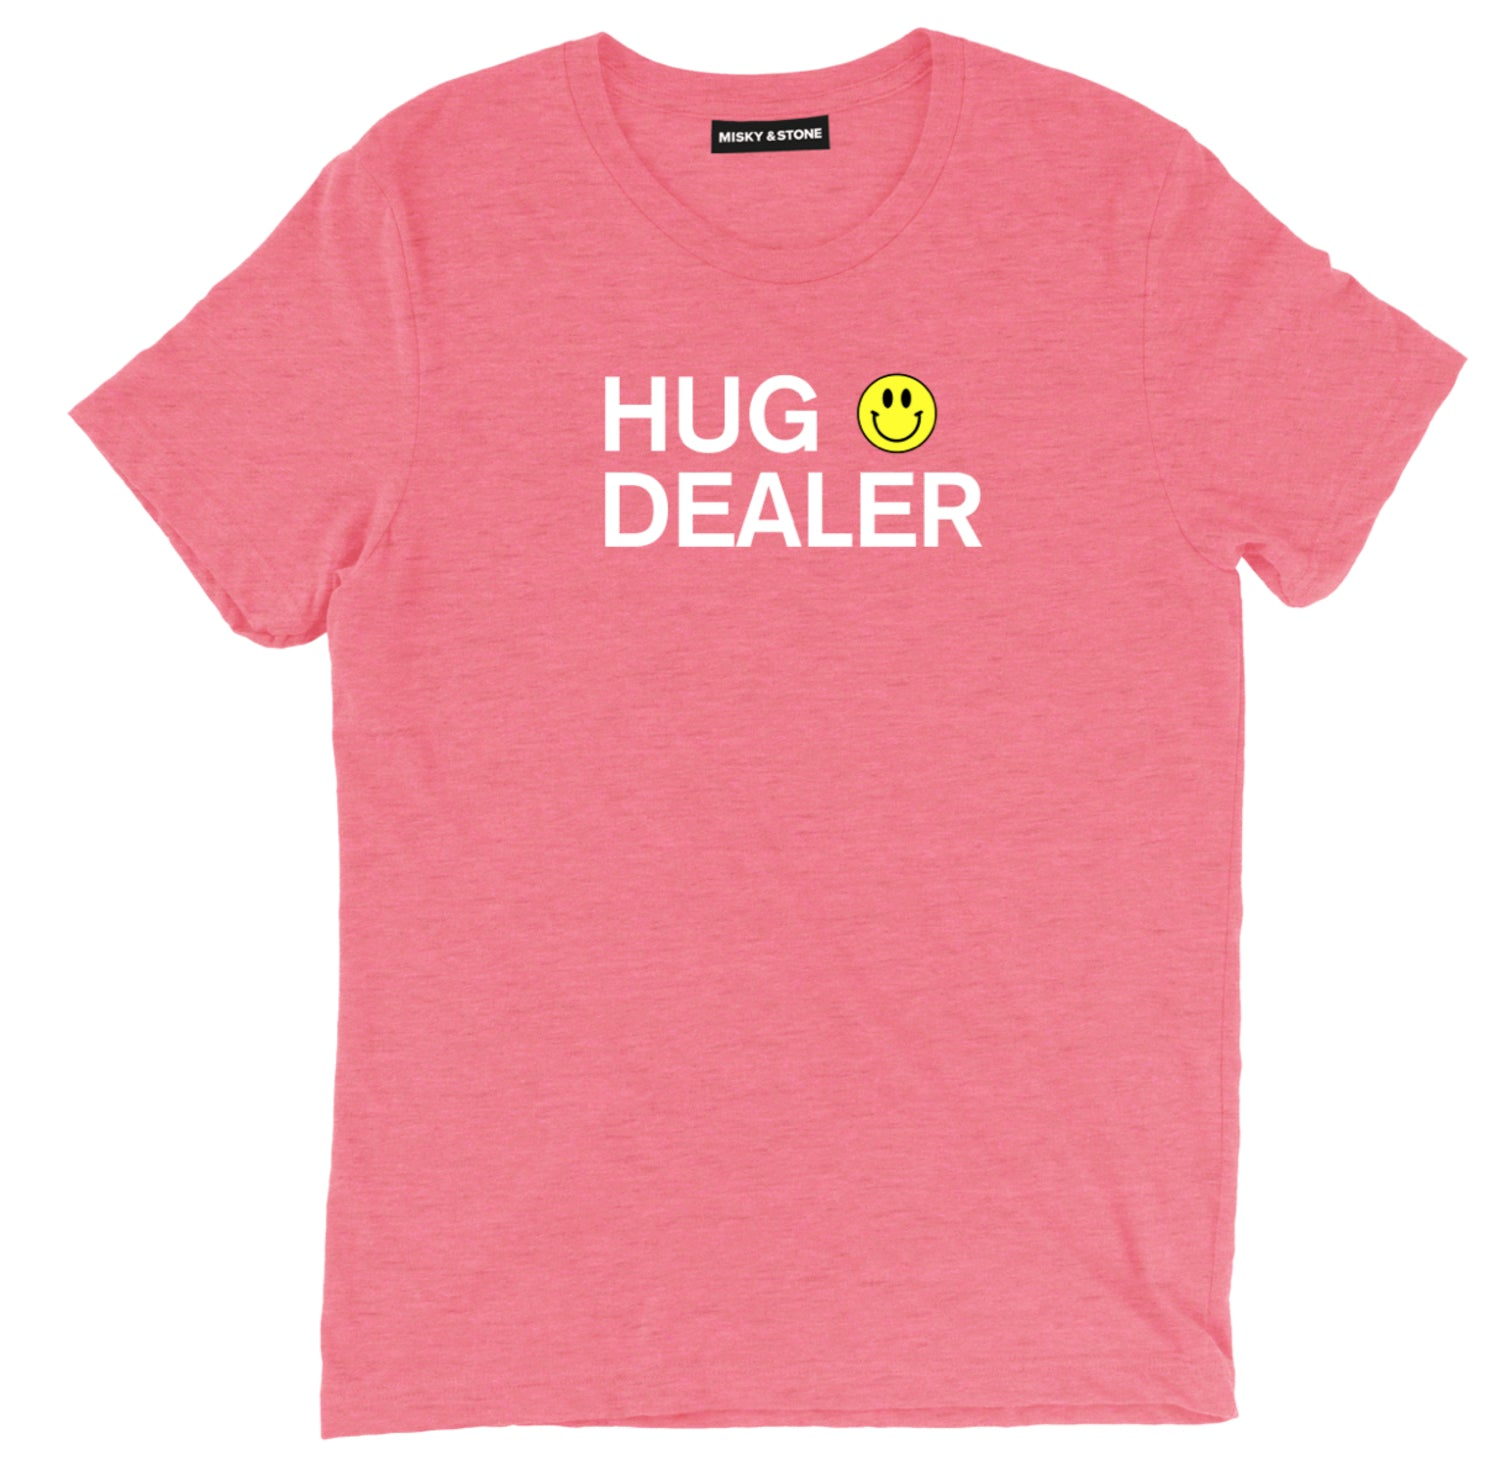 Hug Dealer Unisex T Shirt